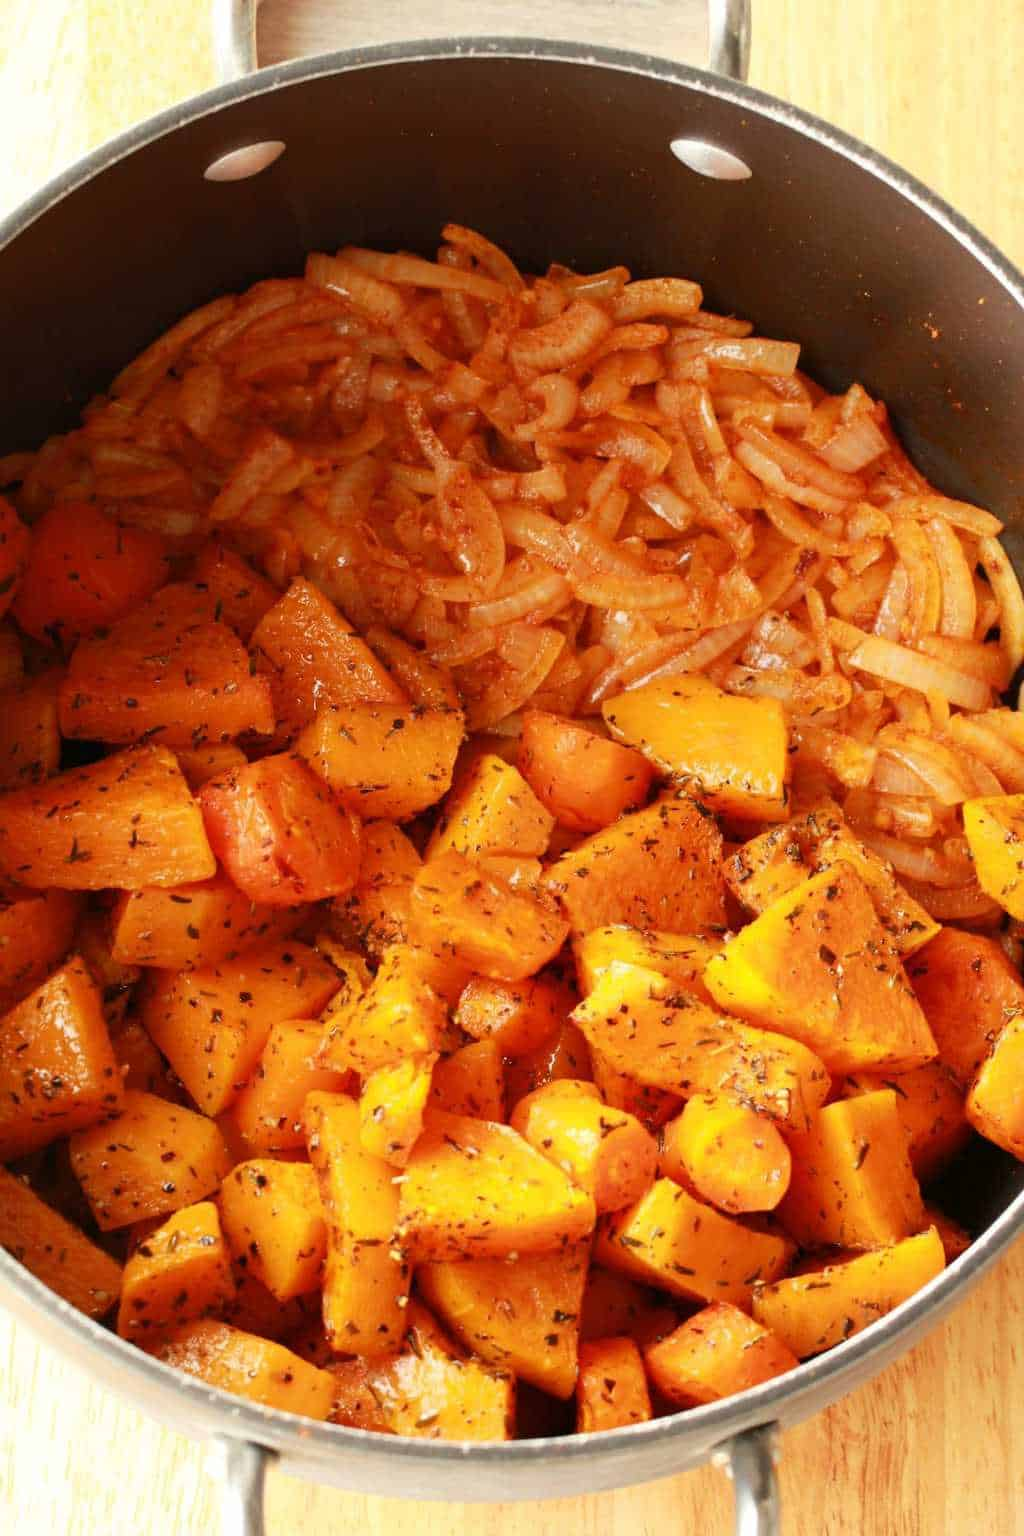 Roasted Butternut and Carrots in a pot with sautéed onions